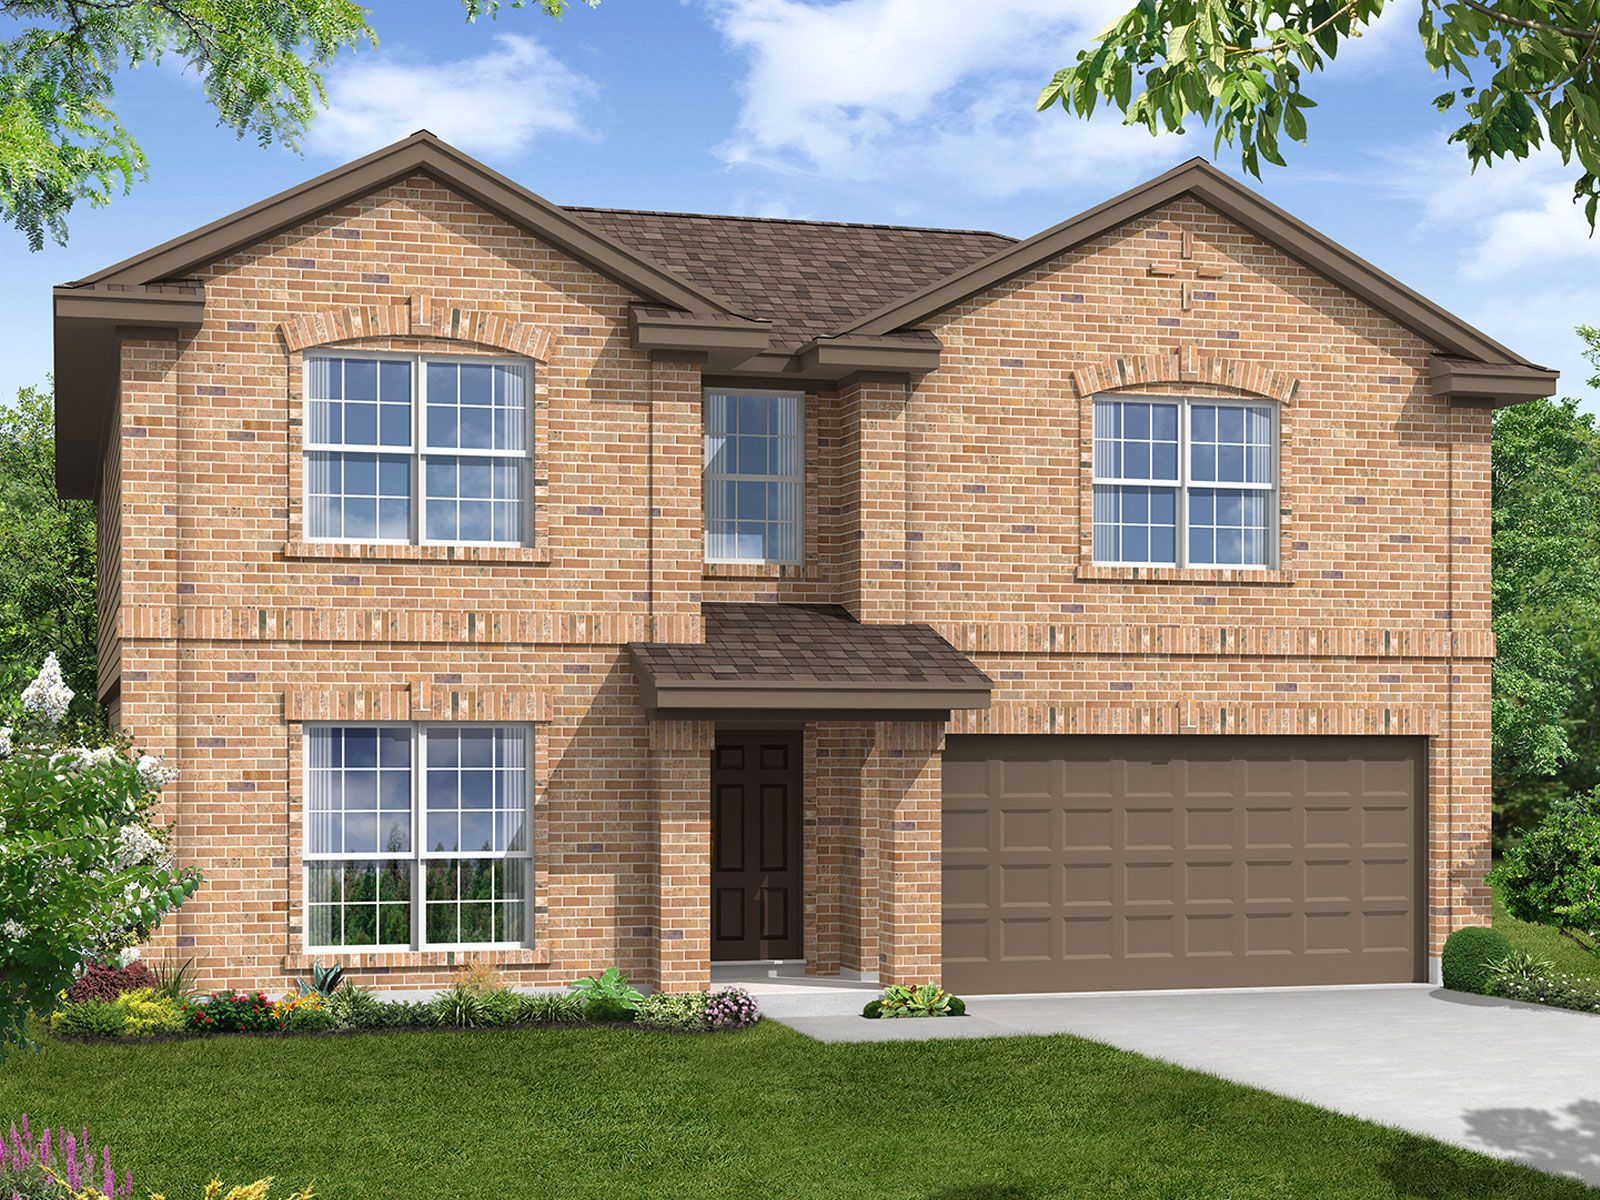 New Homes In Garden Ridge Tx View 4 214 Homes For Sale